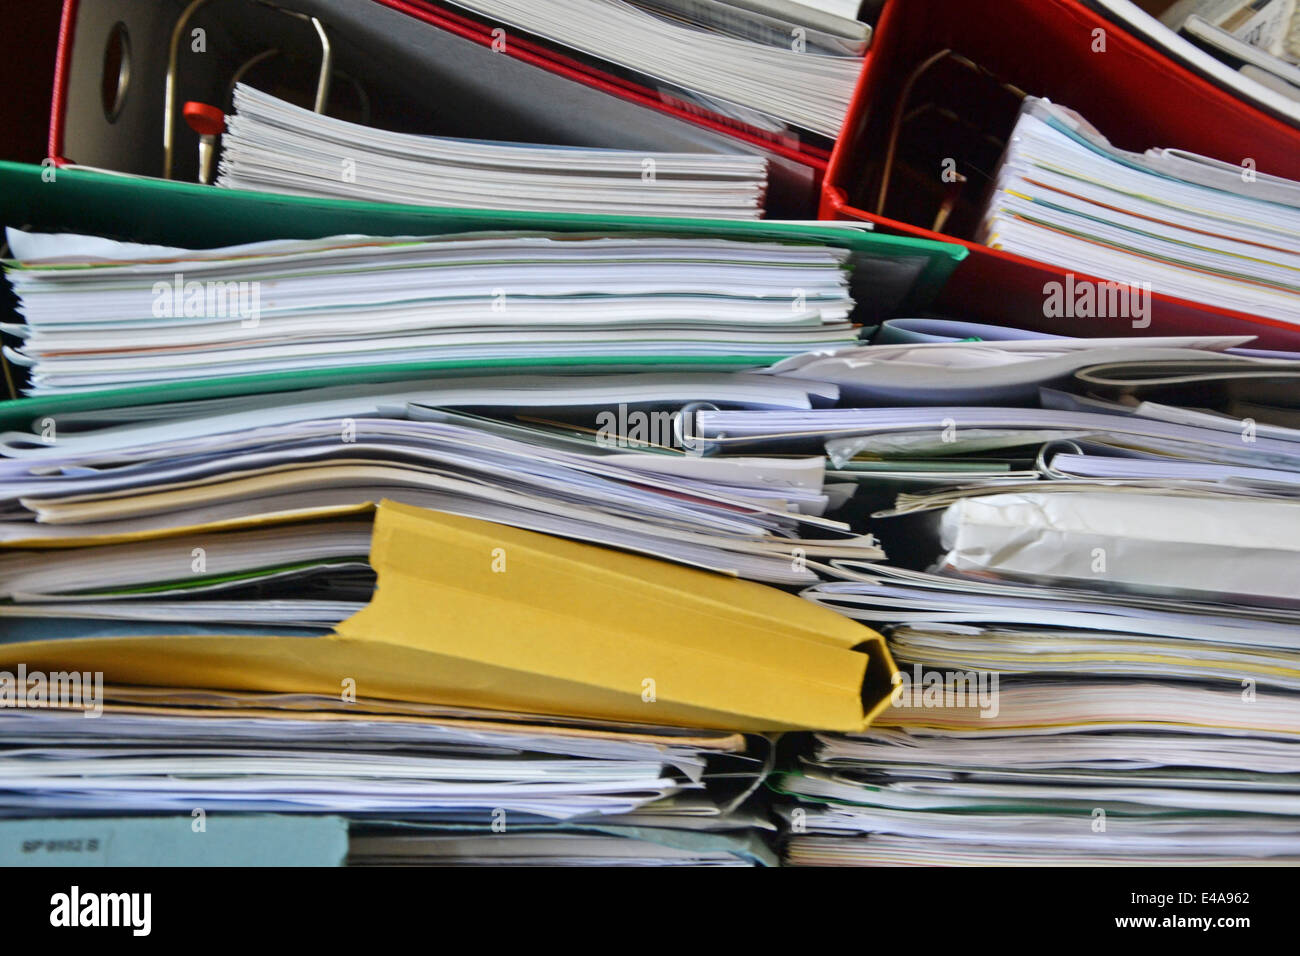 close up of a stack of paperwork - Stock Image